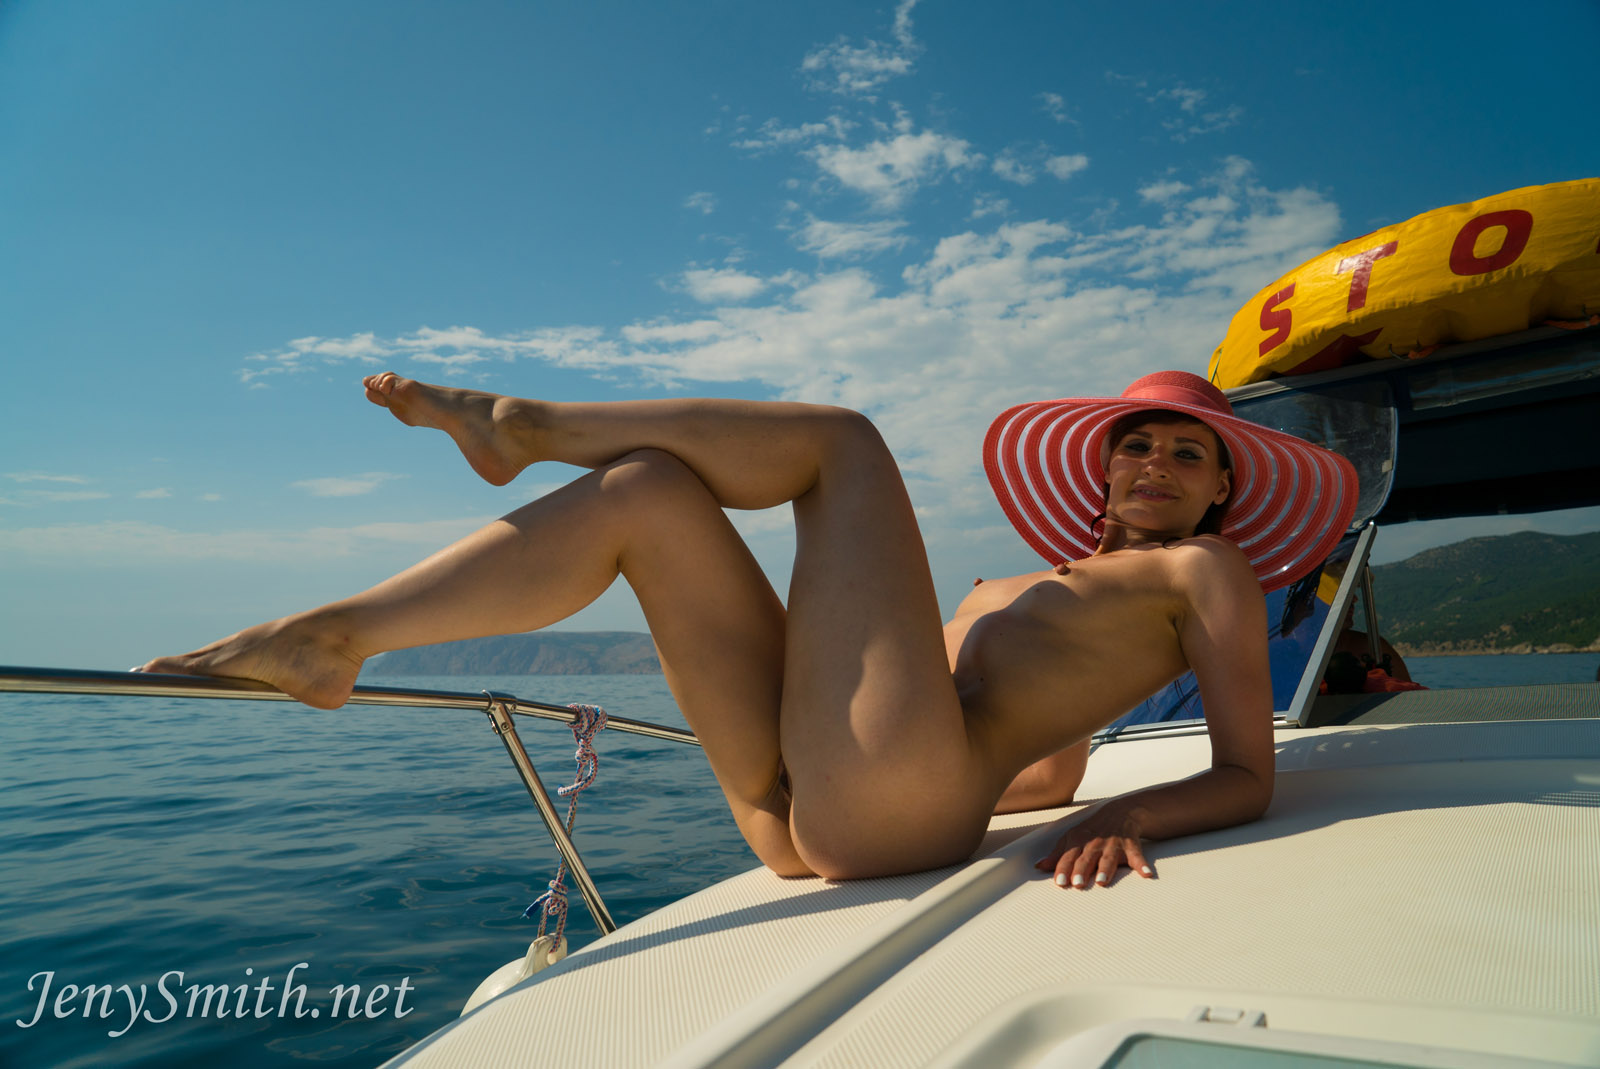 from Vicente nude guy boat pics